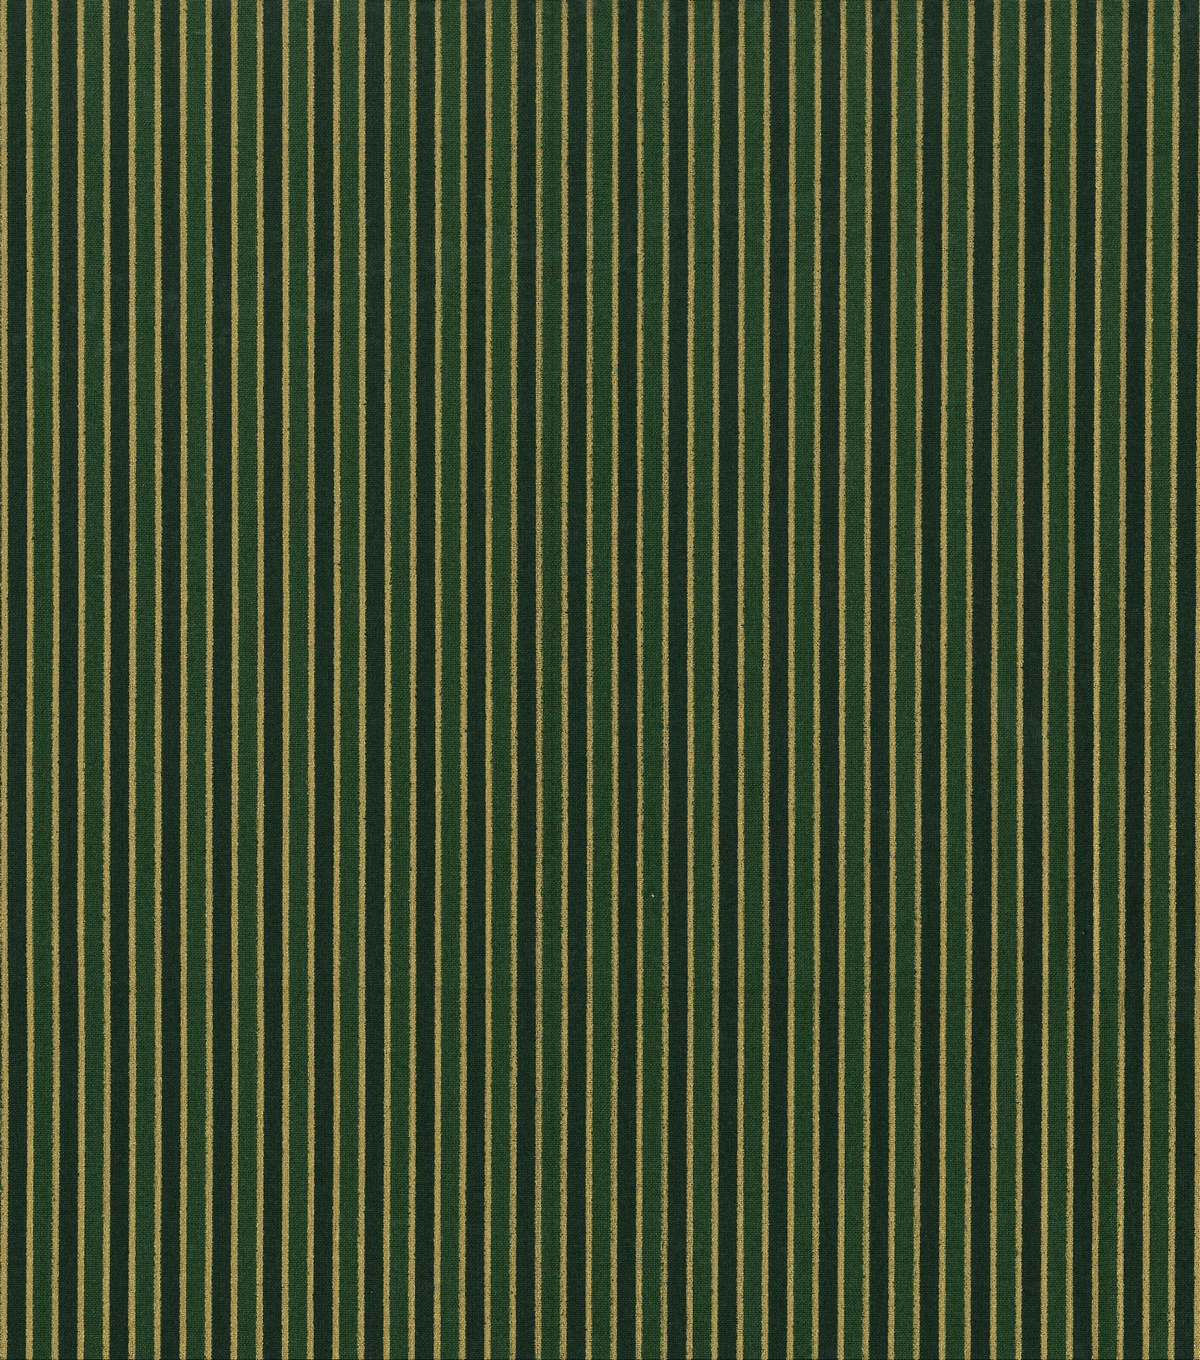 Holiday Cotton Fabric -Metallic Gold Stripe on Green